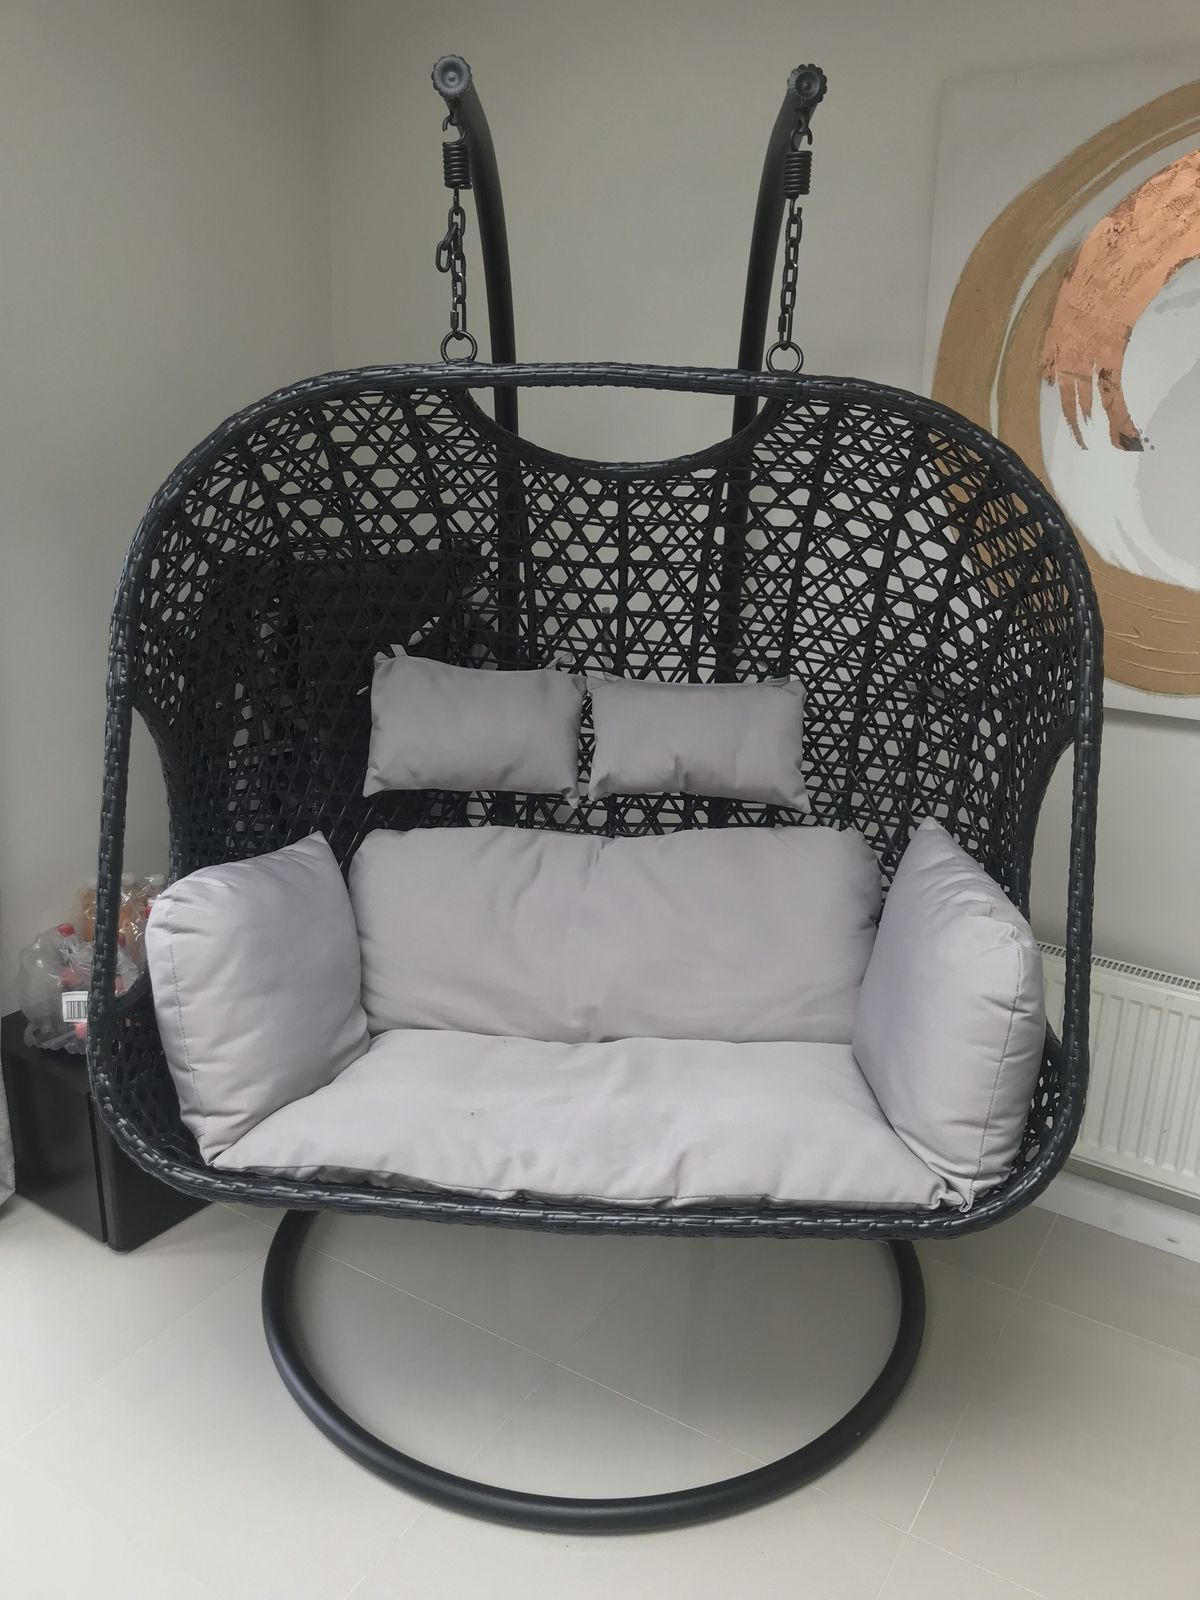 Egg Wicker Chair My Cms Cocoon Hanging Egg Chair Black White Cushion Rattan